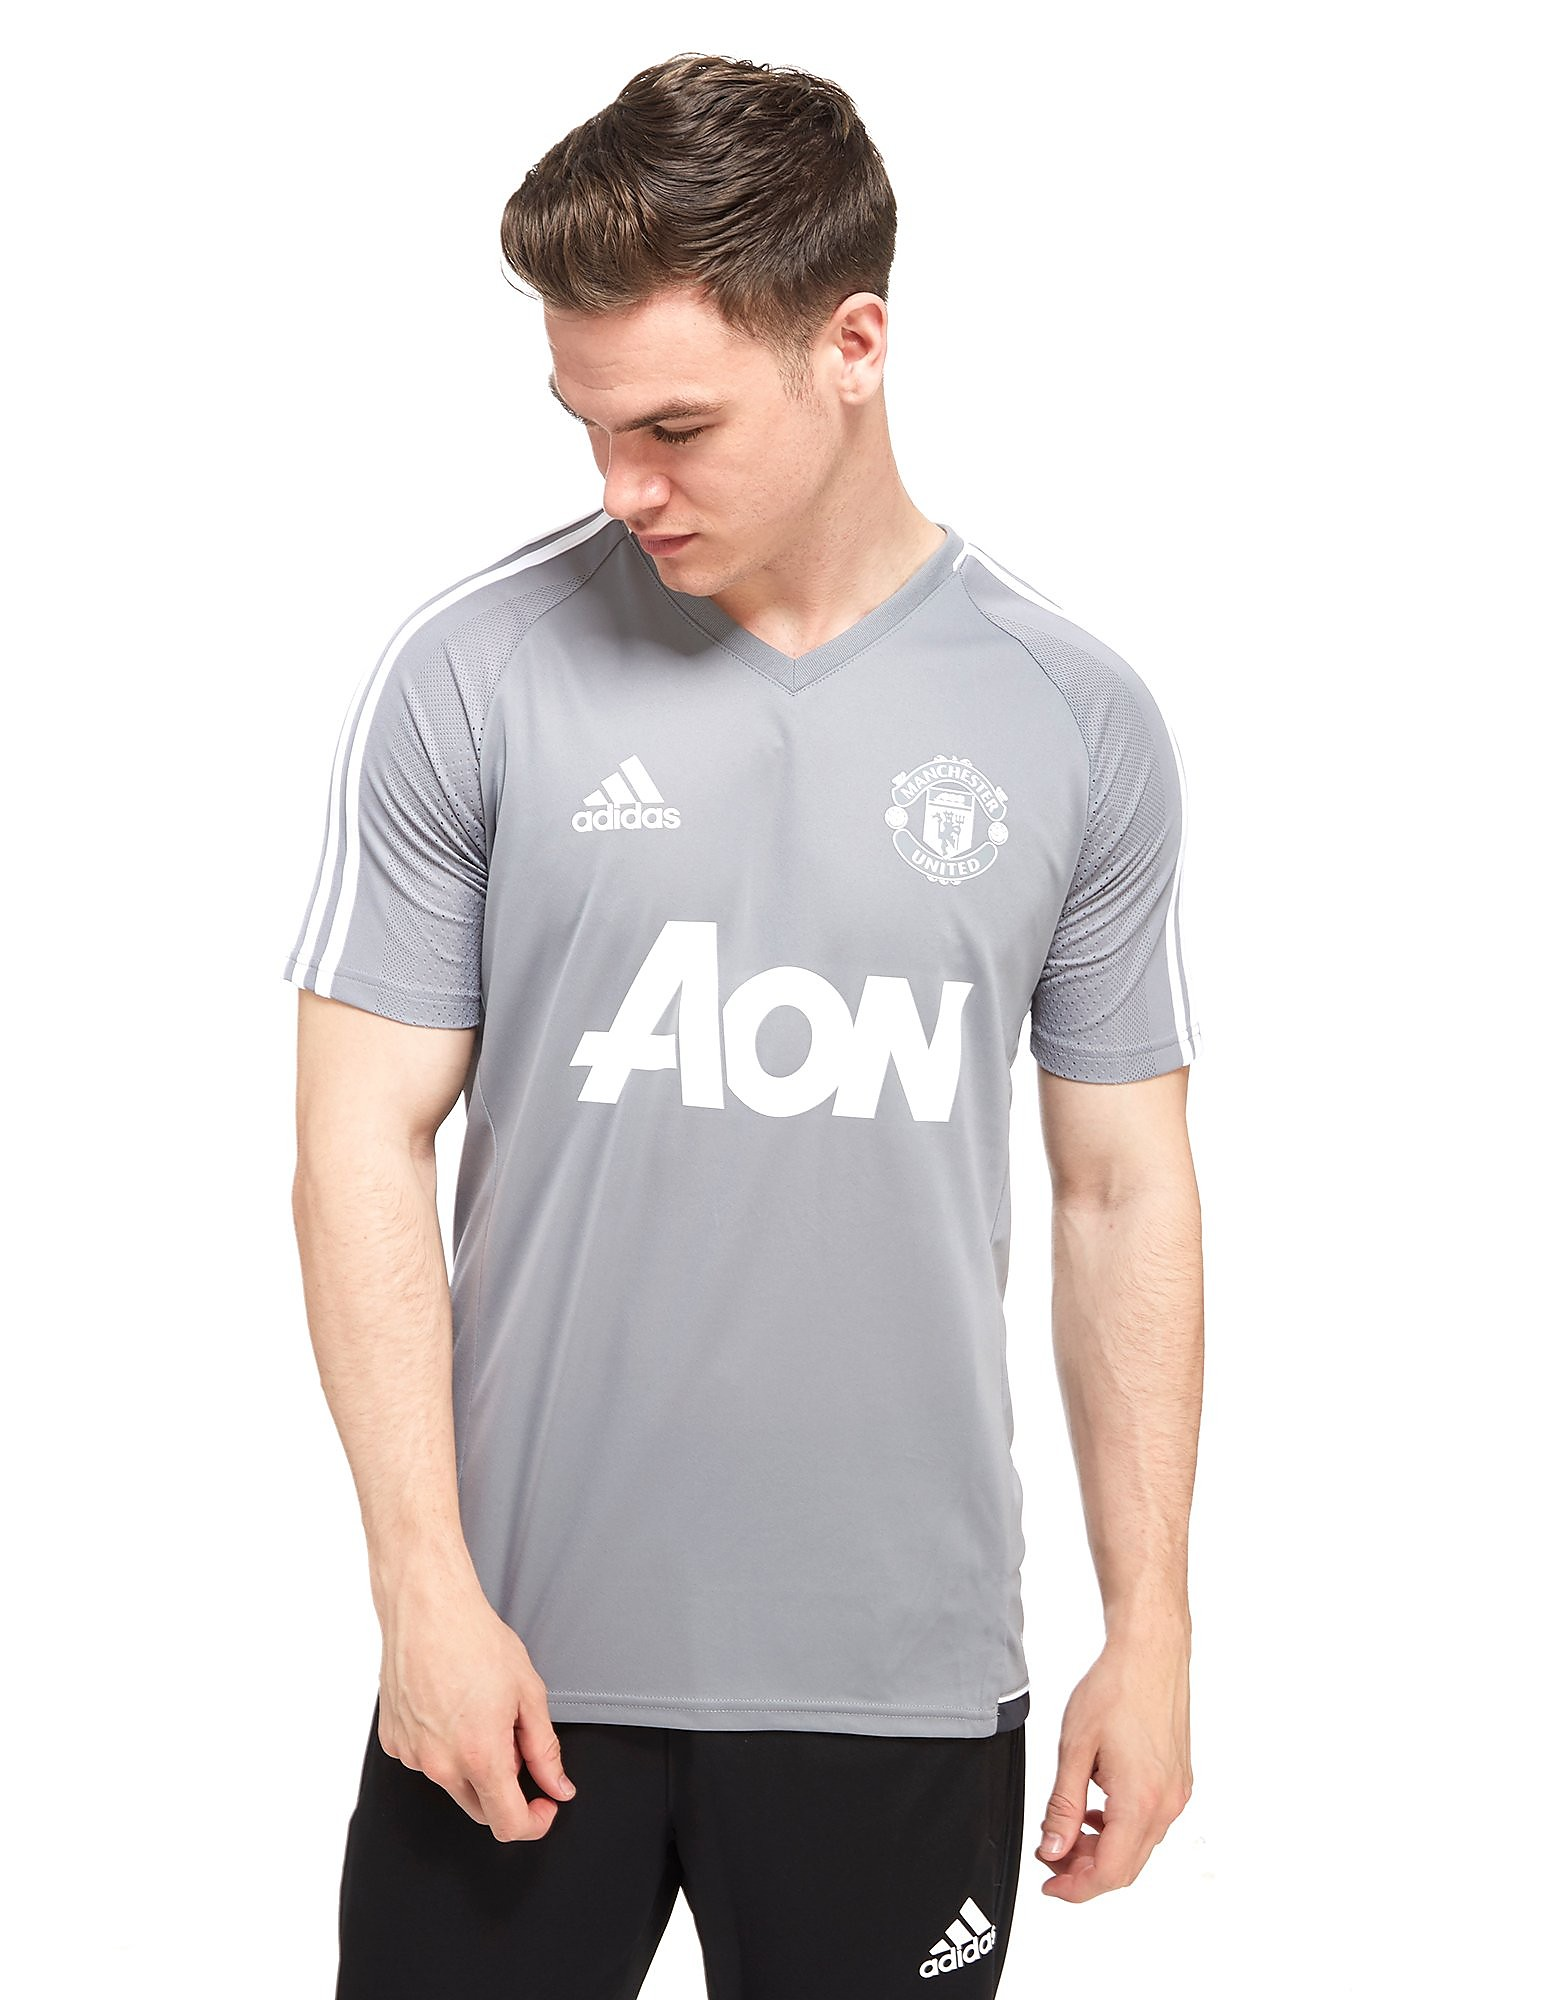 adidas Manchester United 2017 Training Shirt